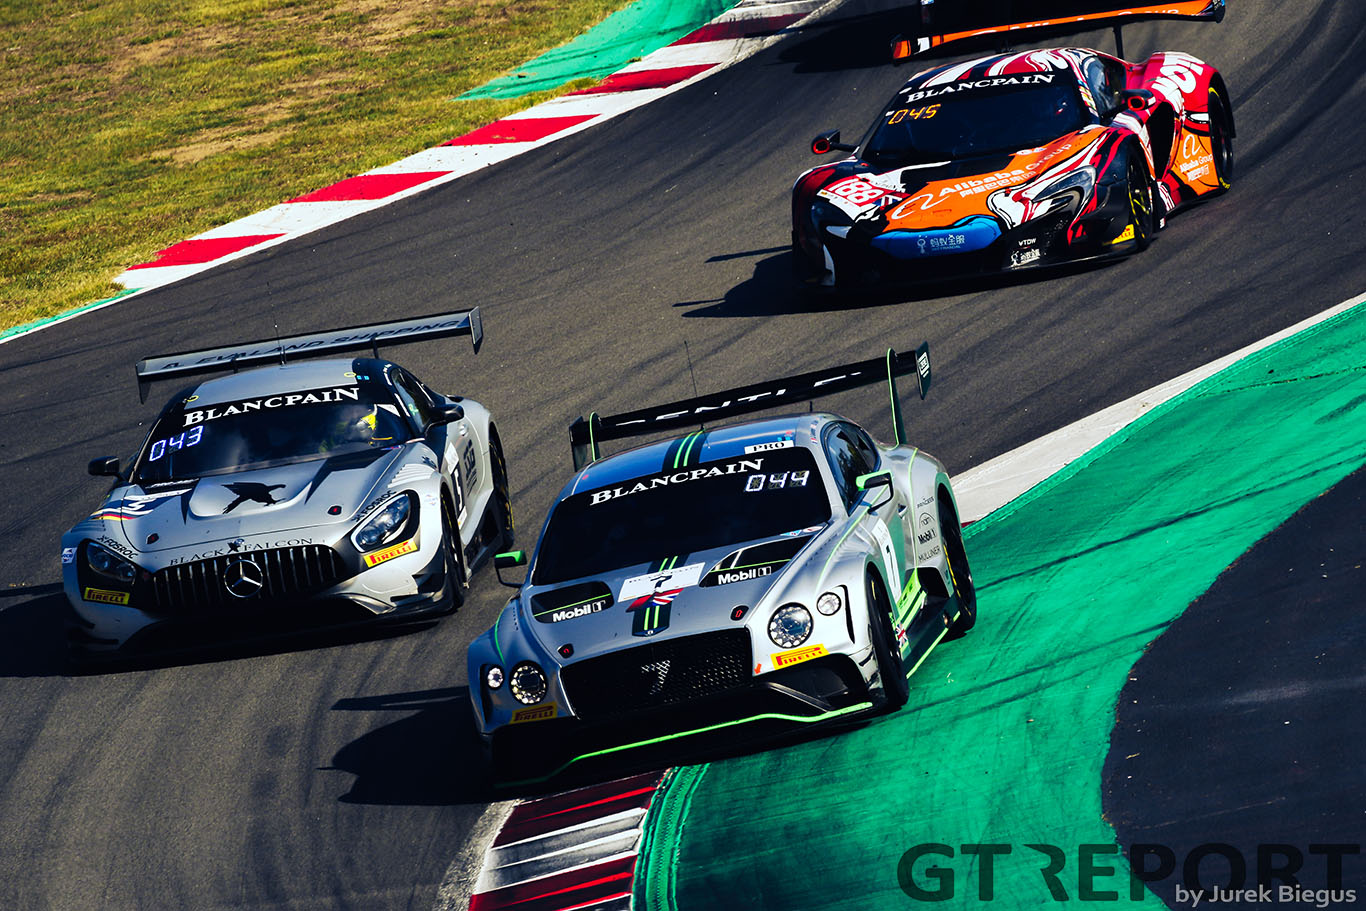 | Blancpain GT Series Endurance | Circuit de Catalunya | 30 September 2018 | Photo: Jurek Biegus